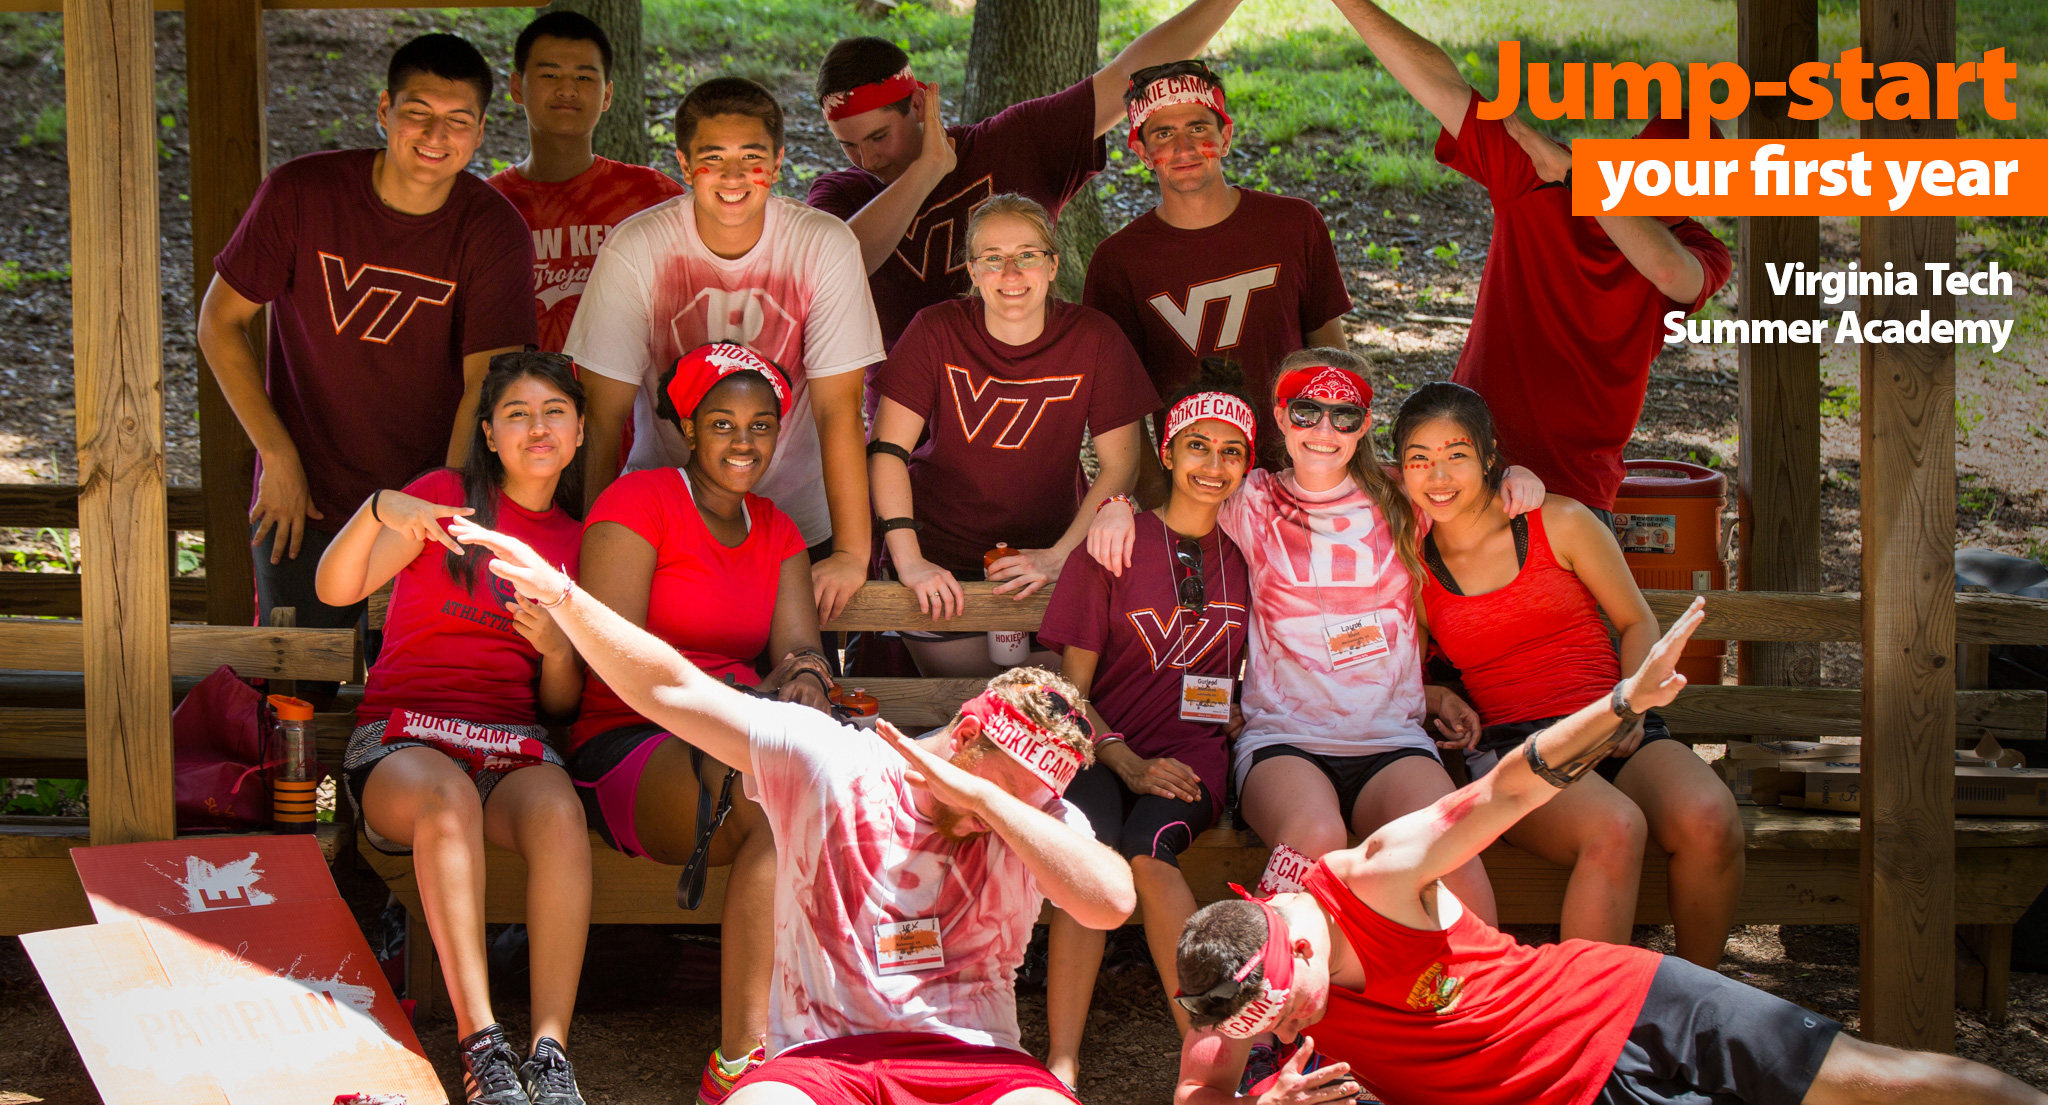 Hokie Camp and Orientation are included in Summer Academy!